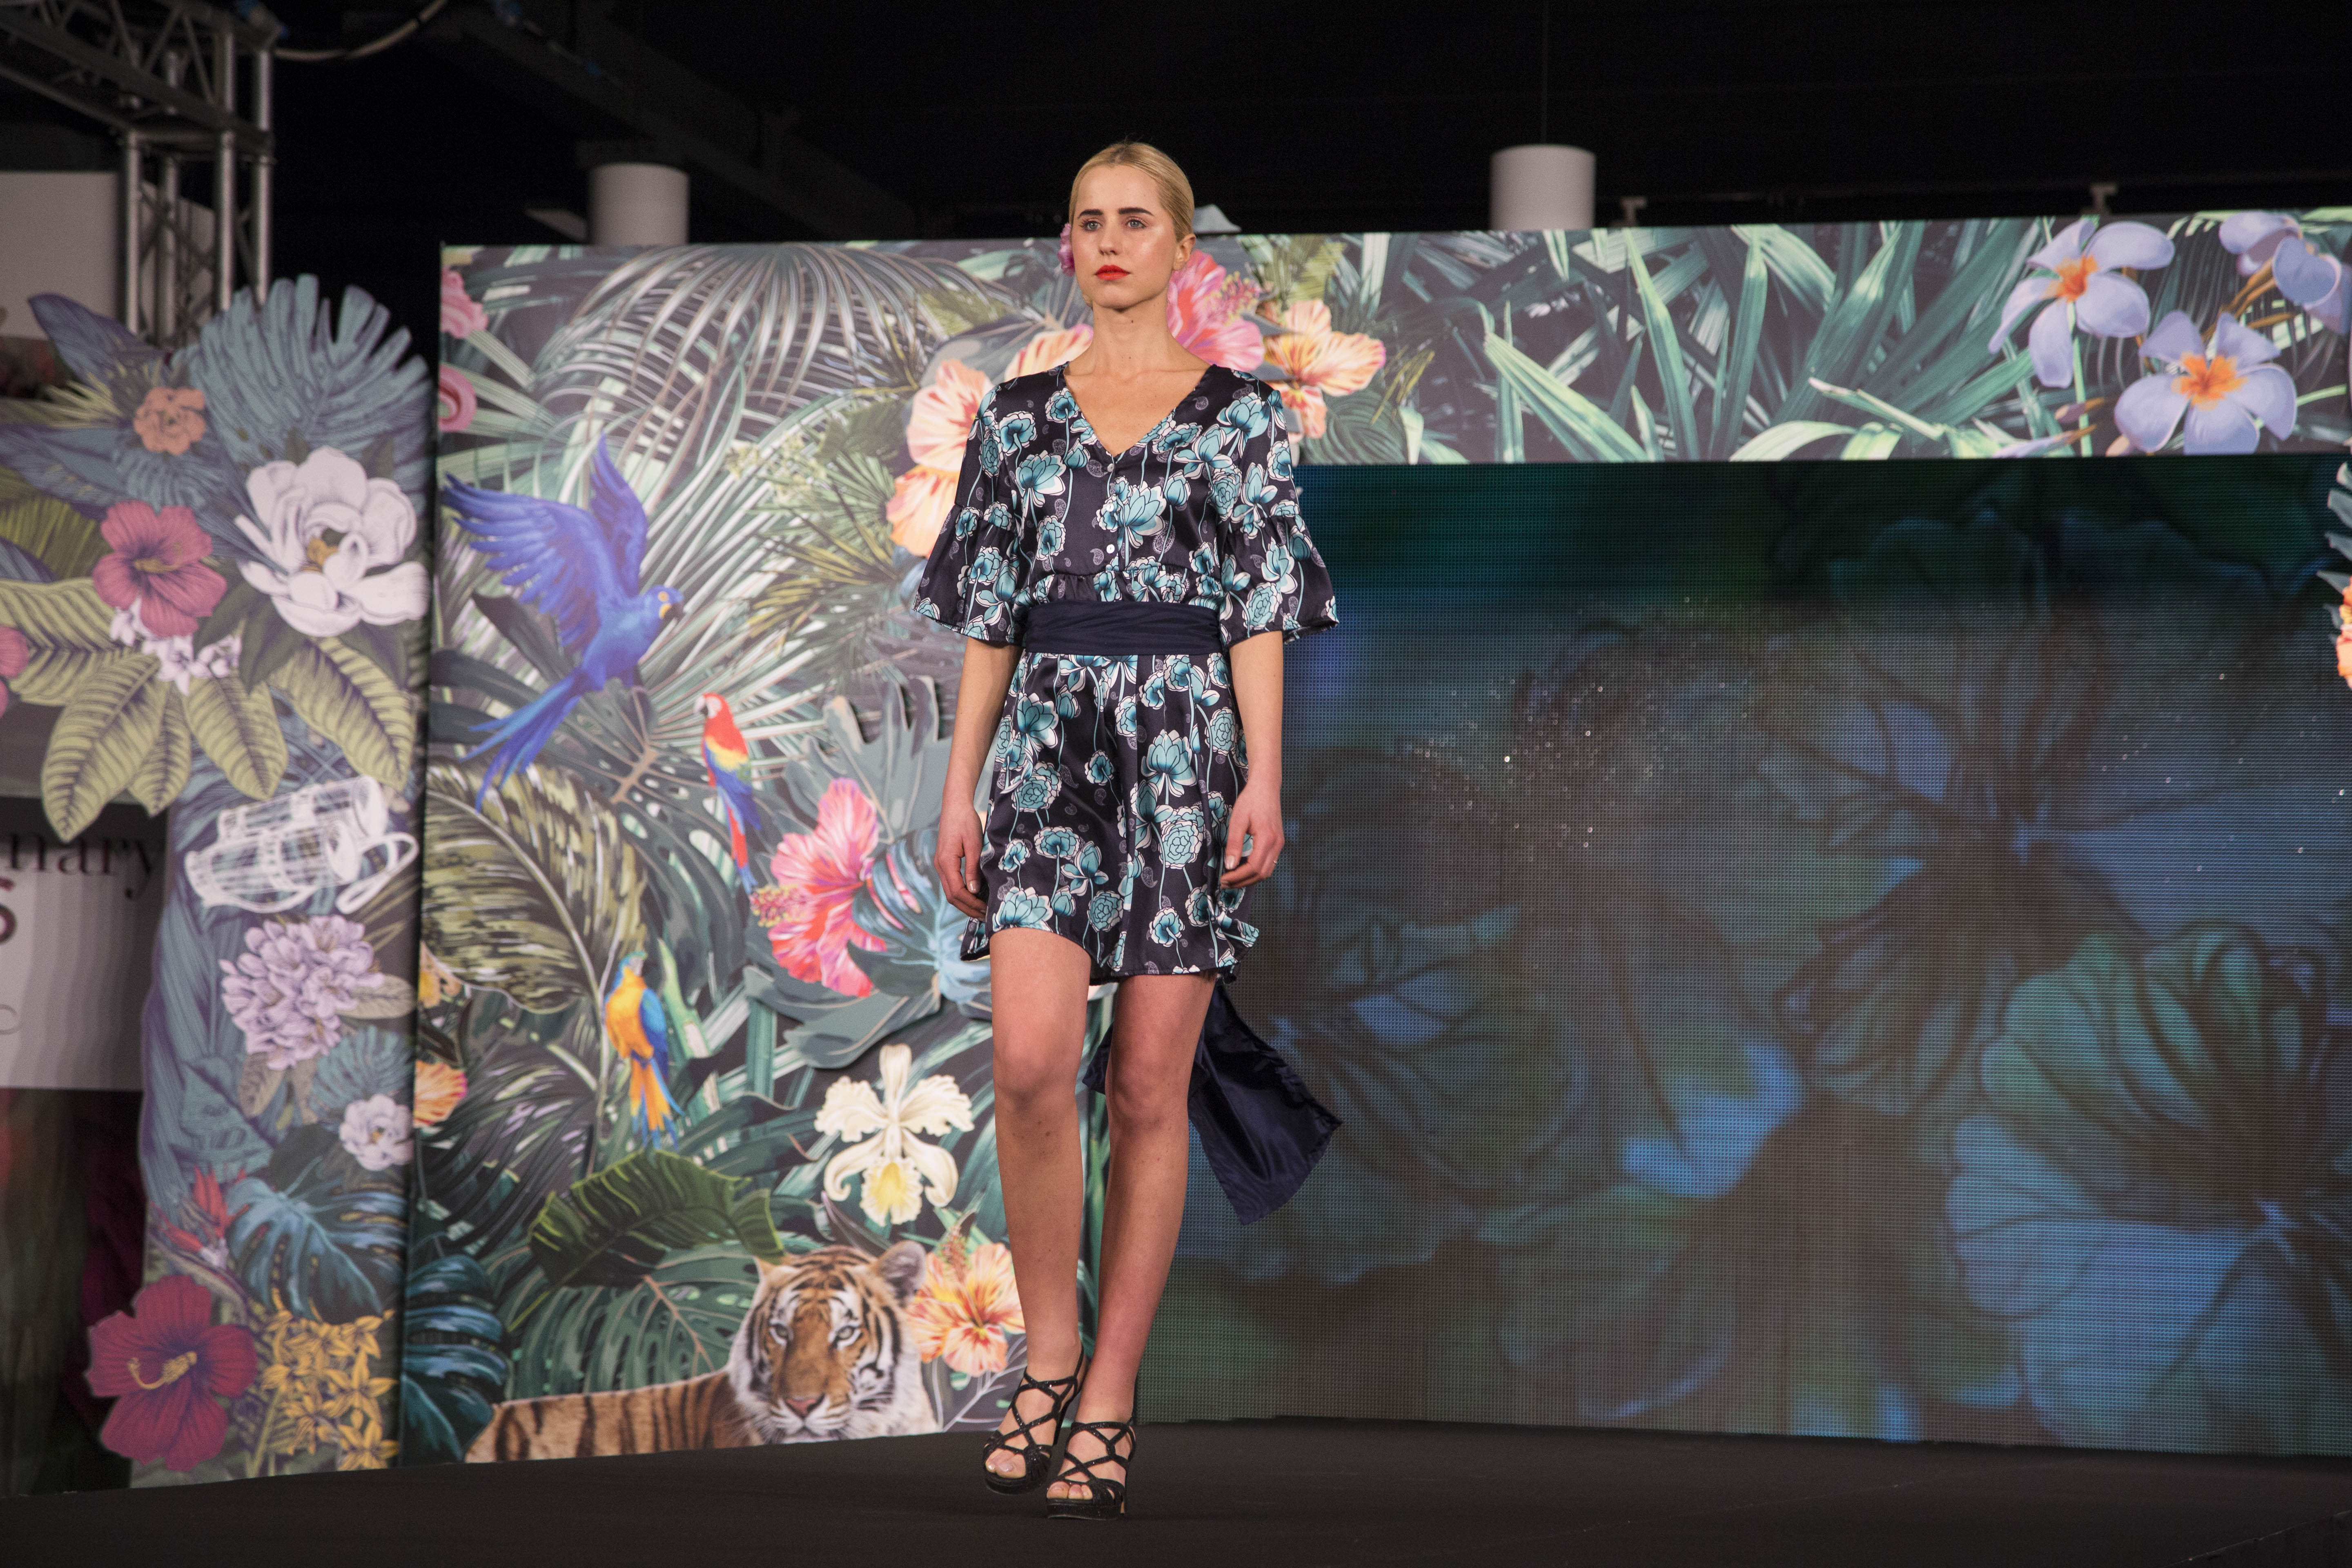 Risskio SS 2018: extraordinary tales, alessia milanese, thechilicool, fashion blog, fashion blogger